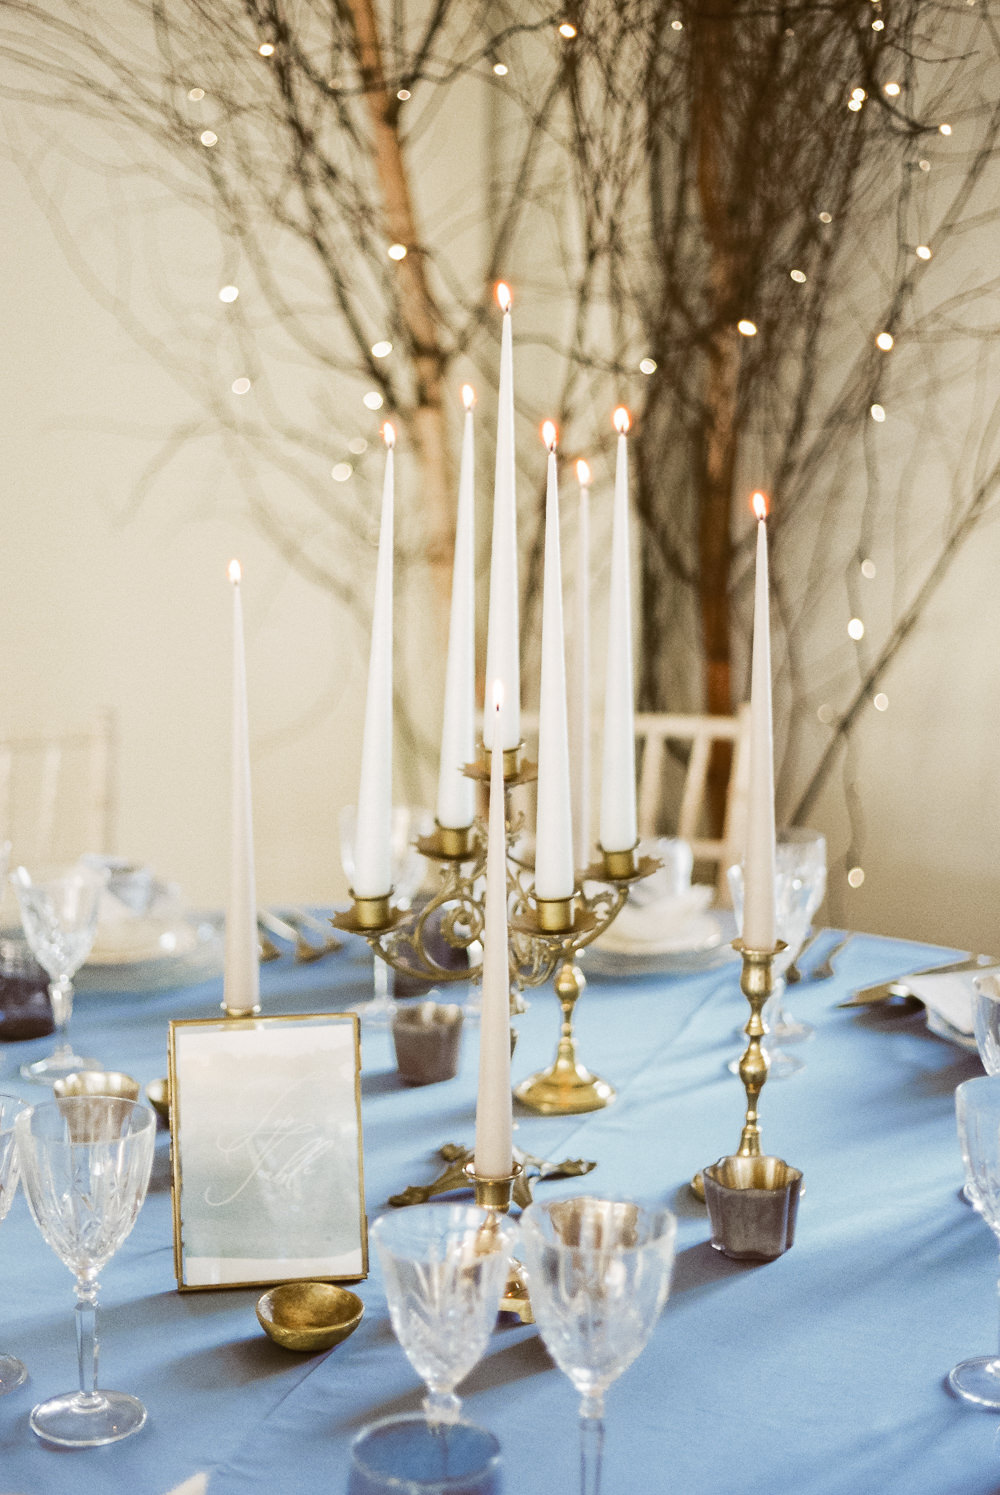 Candle Sticks Table Decor Tablescape Winter Blue Barn Wedding Ideas Joanna Briggs Photography